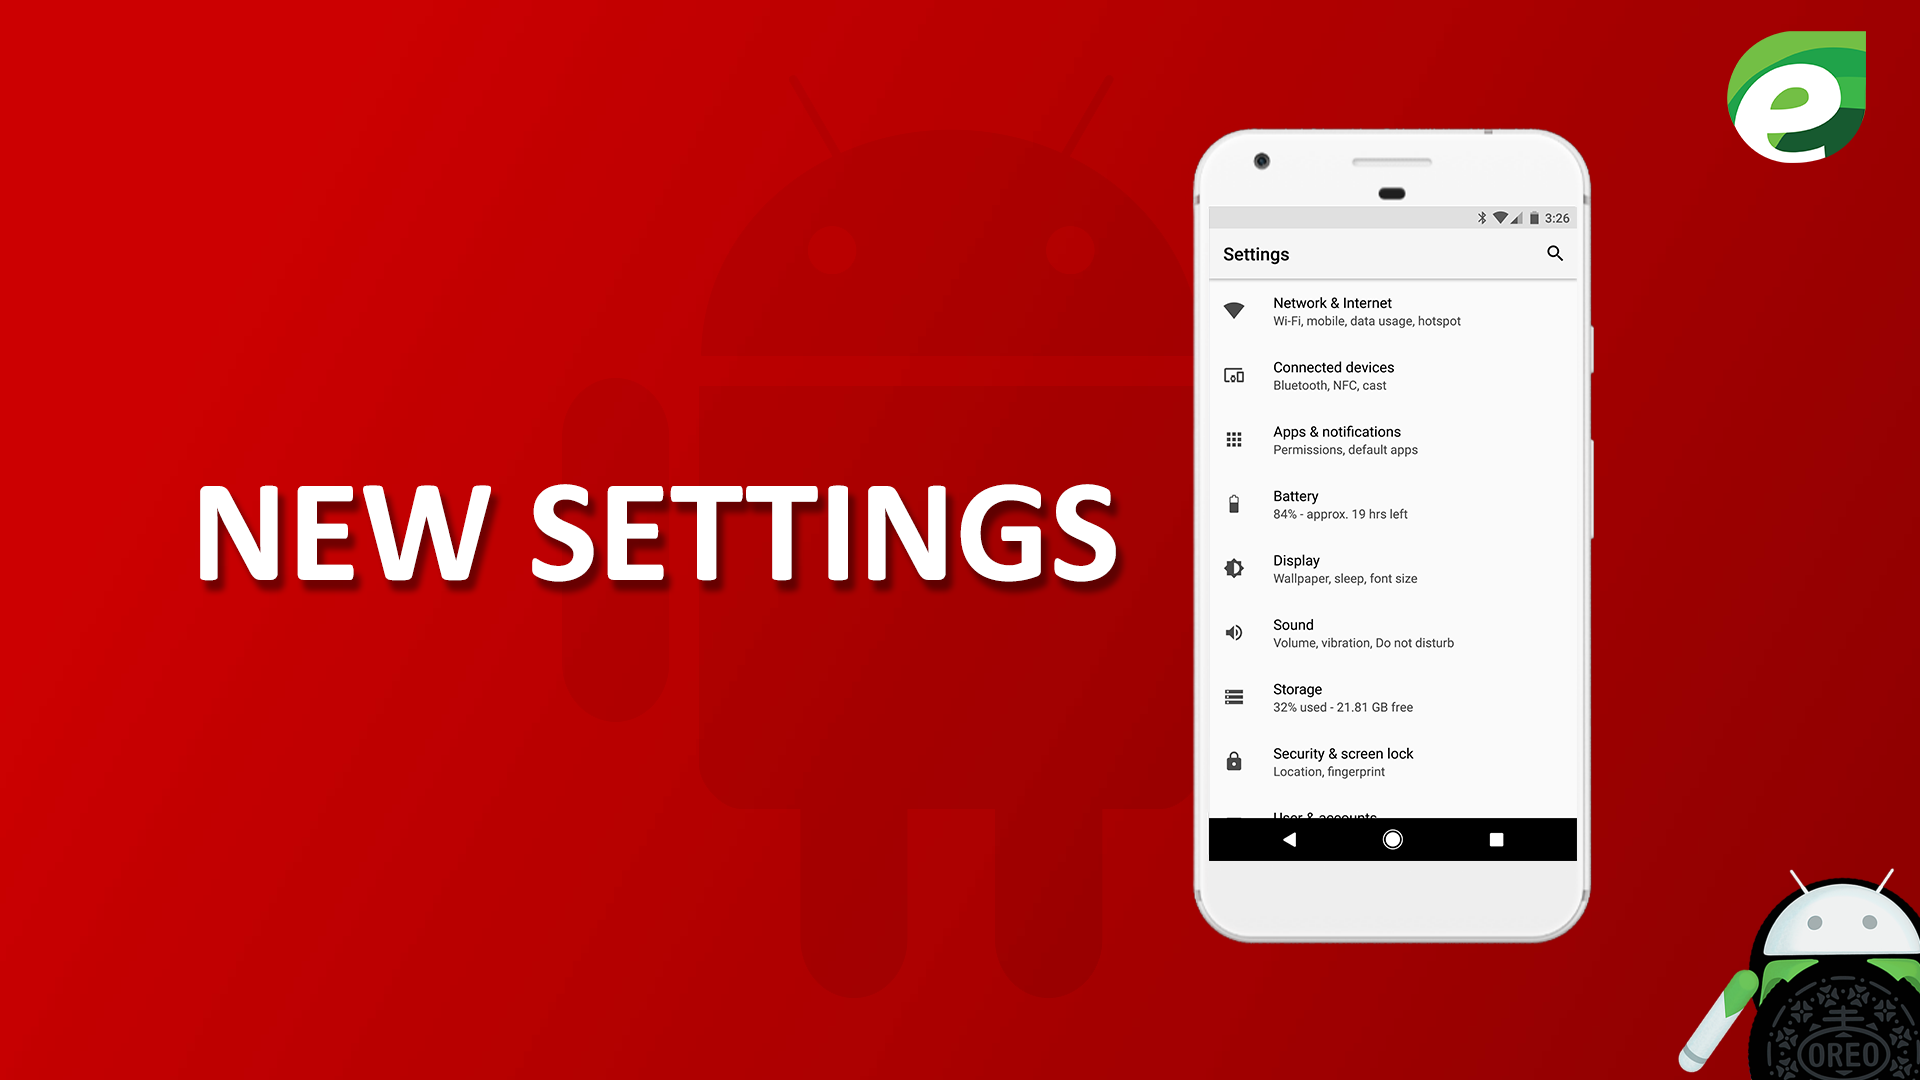 Android oreo- New settings